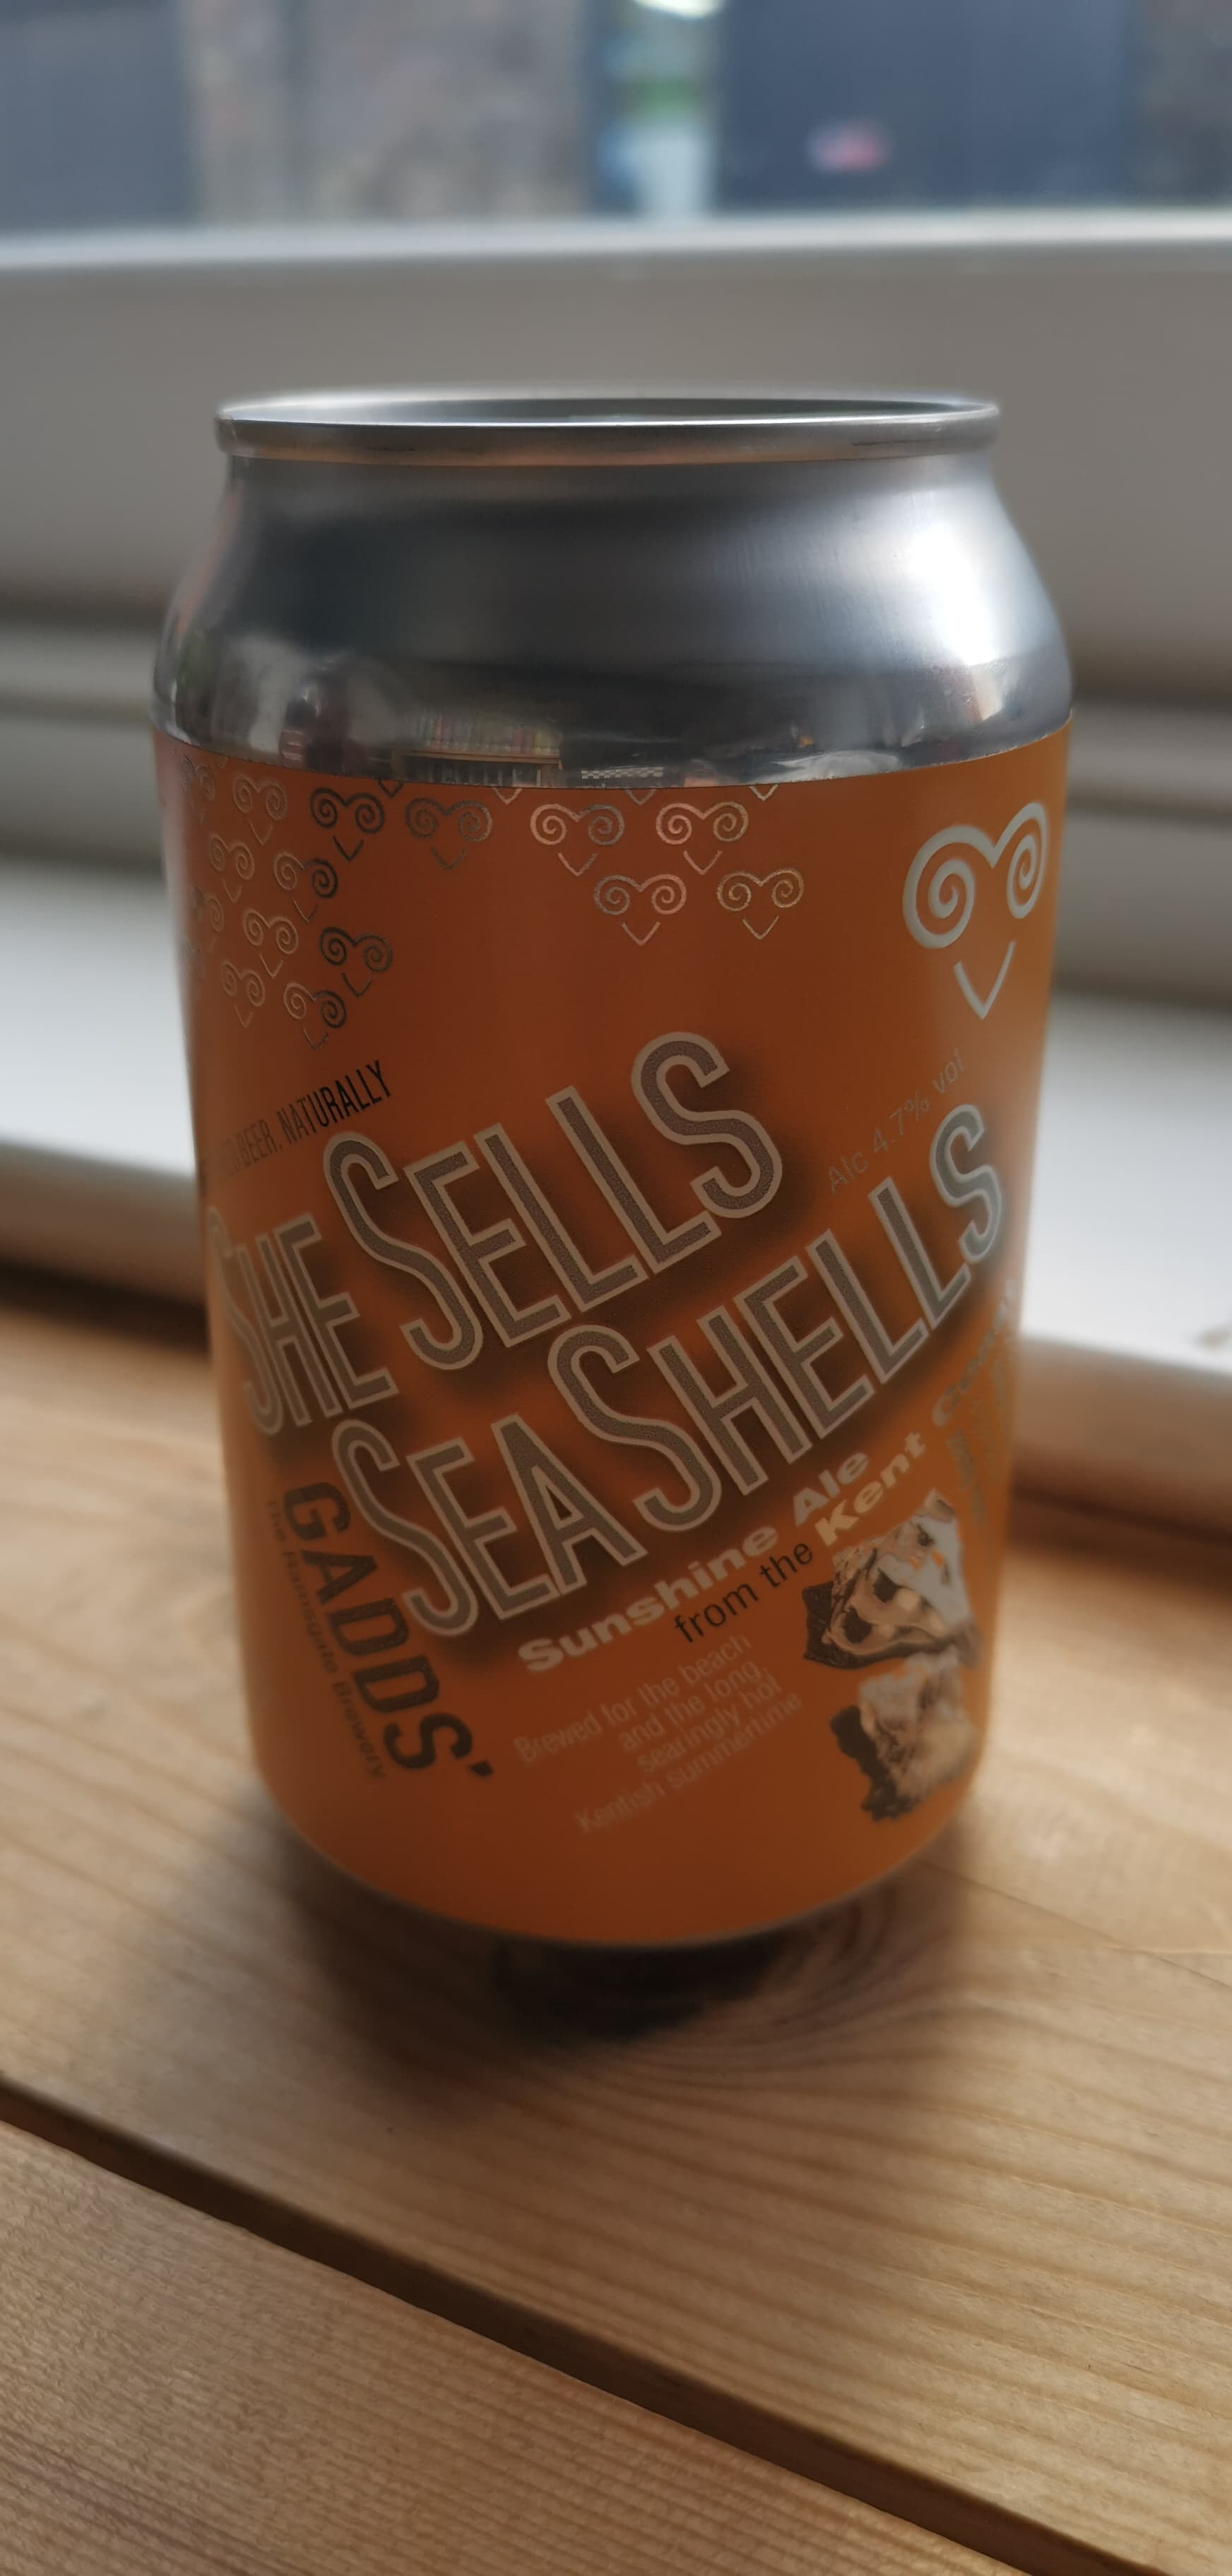 Gadds' - She Sells Sea Shells (4.7% Golden Ale) (The Ramsgate Brewery)